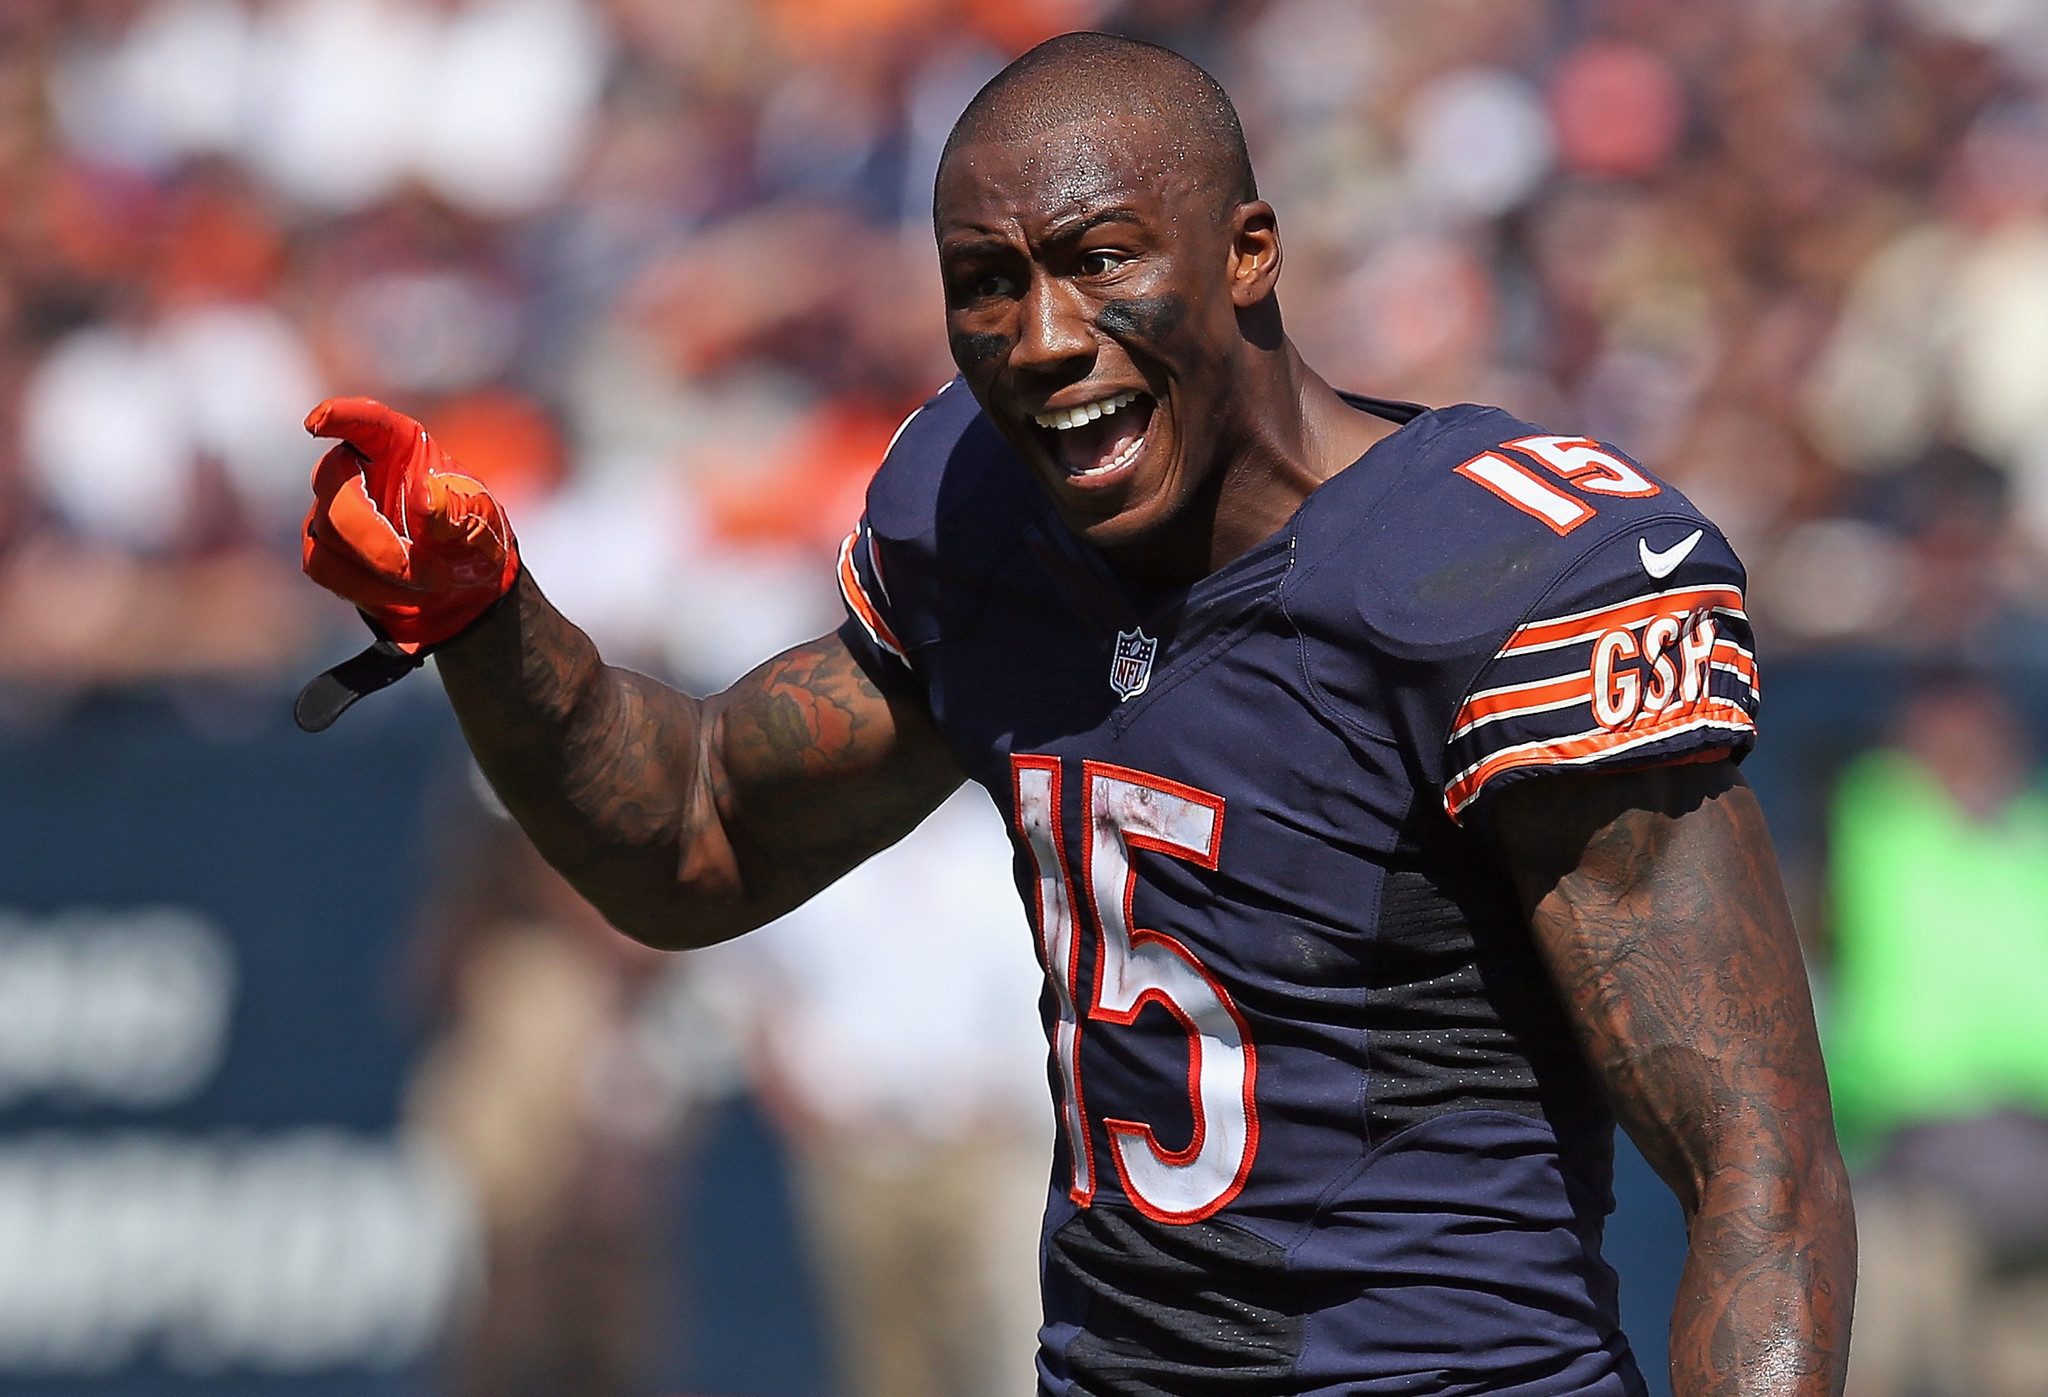 Image result for bears wr brandon marshall angry